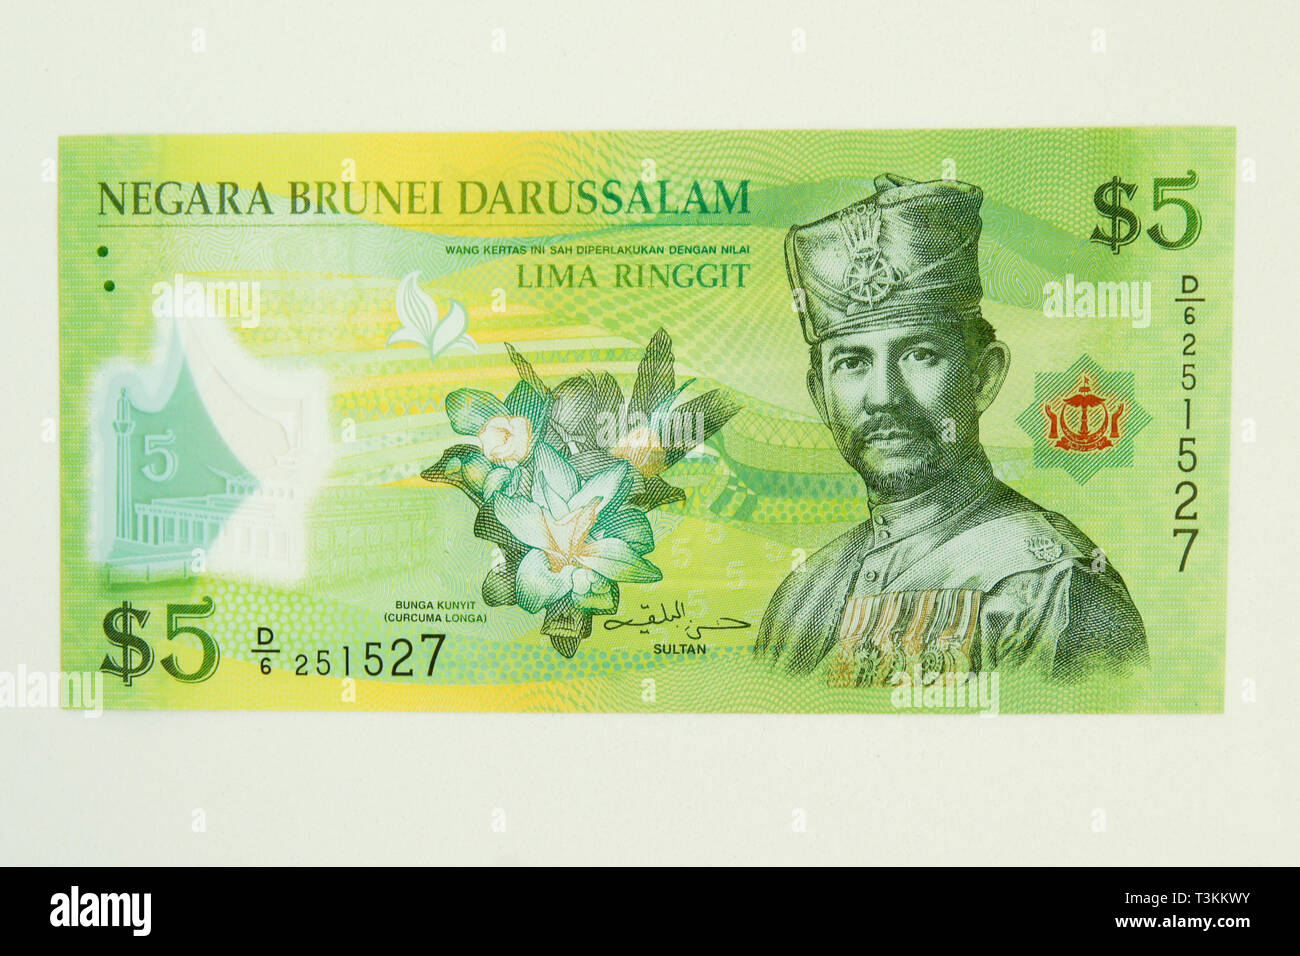 Currency of the Sultanate of Brunei (ringgit) - Stock Image